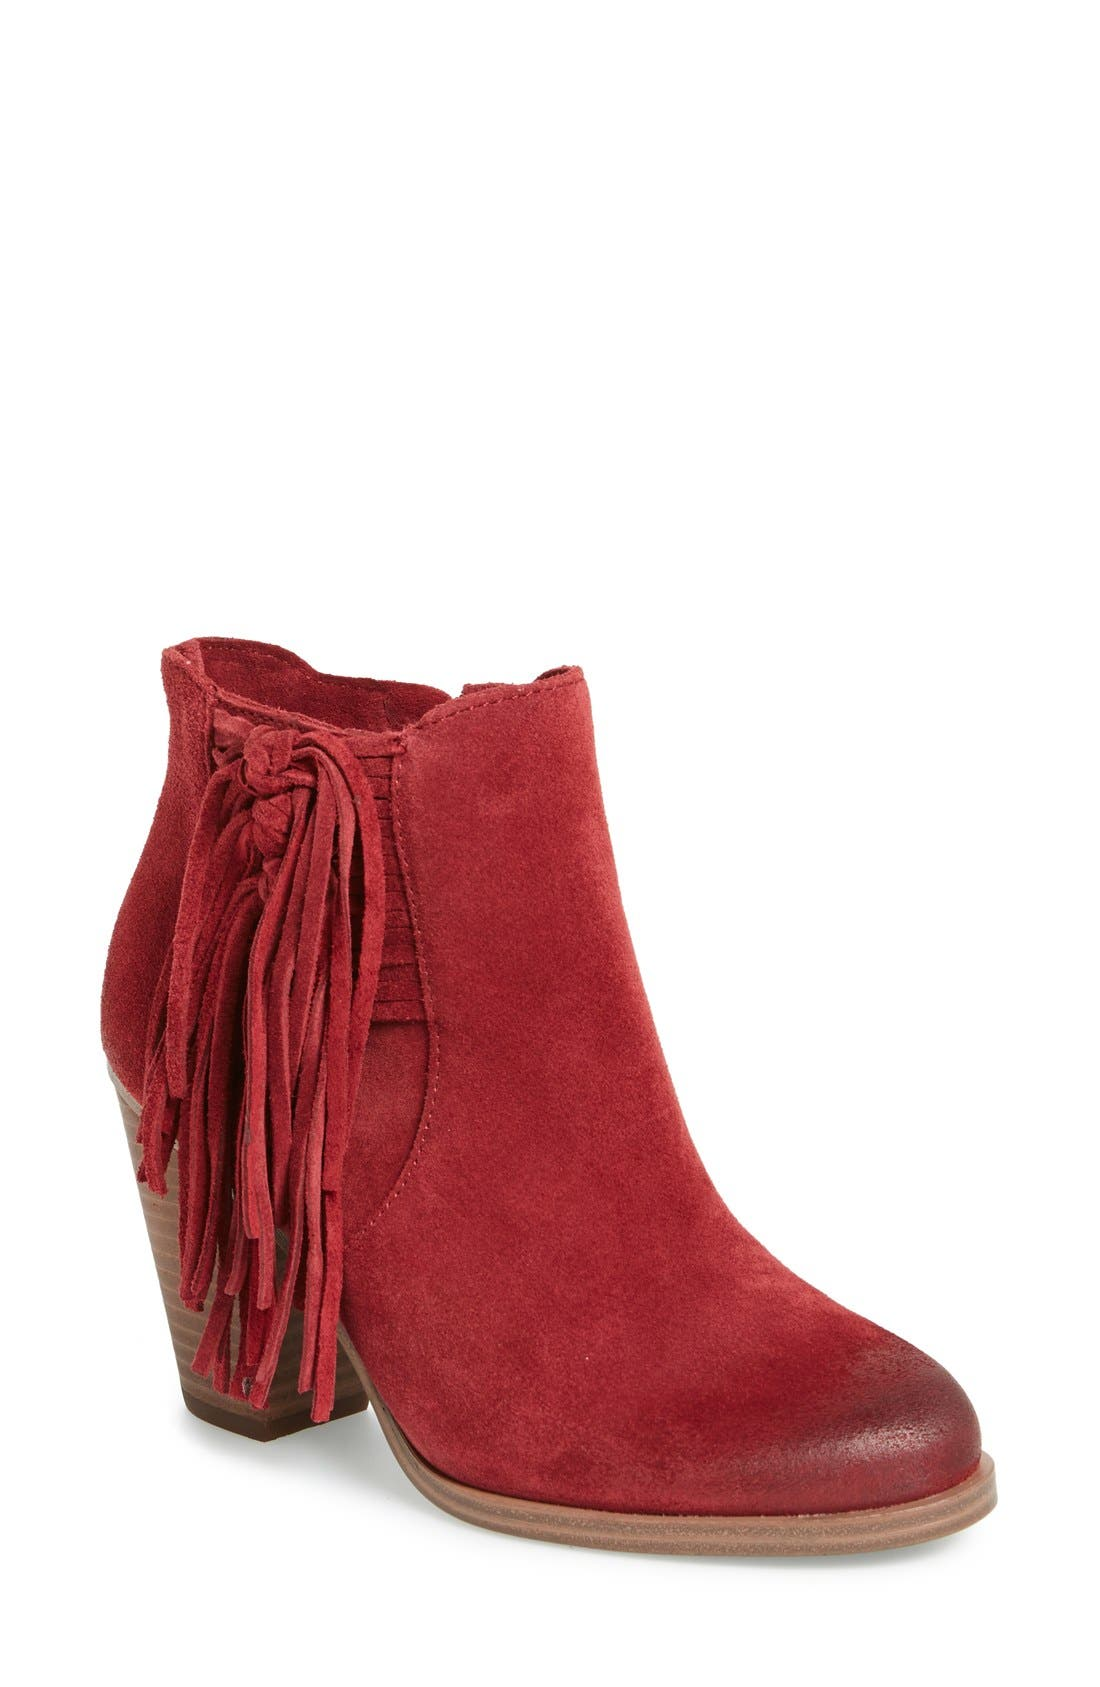 'Harlin' Fringe Bootie,                             Main thumbnail 1, color,                             Chianti Suede